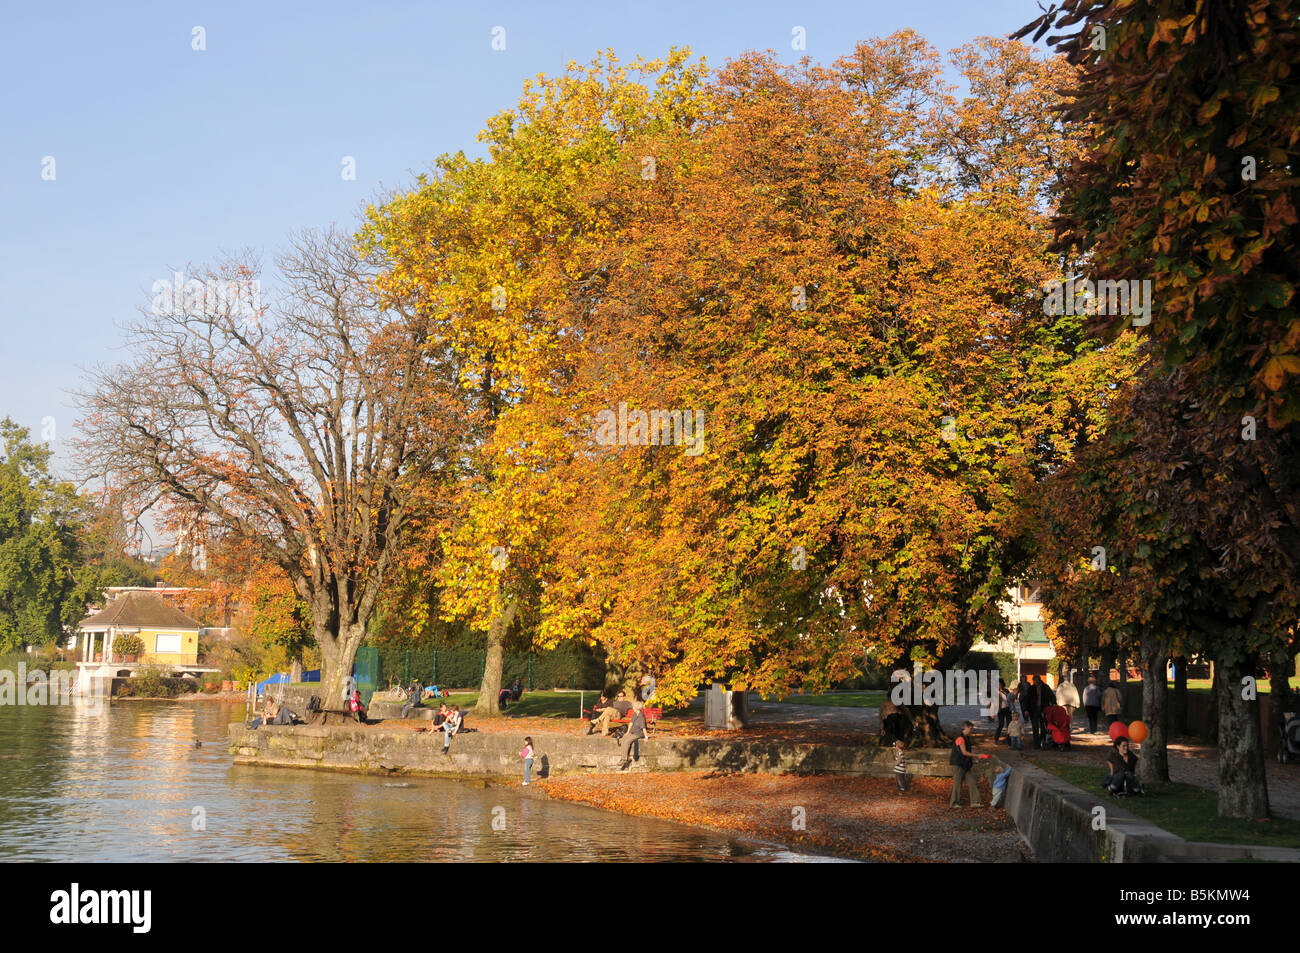 Autum in Rapperswil, Switzerland - Stock Image